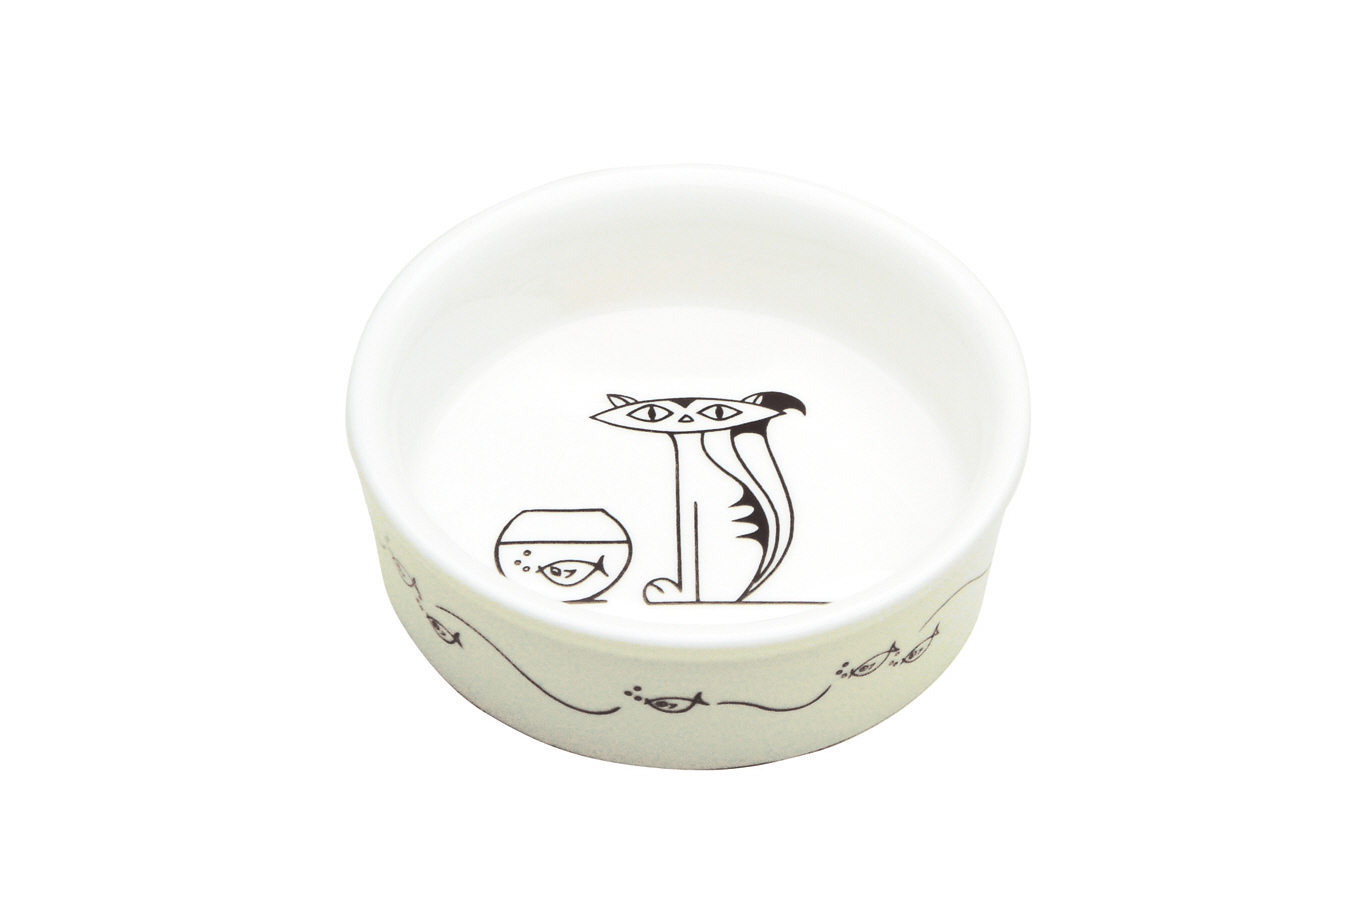 Bol White Basics Cat Bowl Alb, Portelan, 15 cm